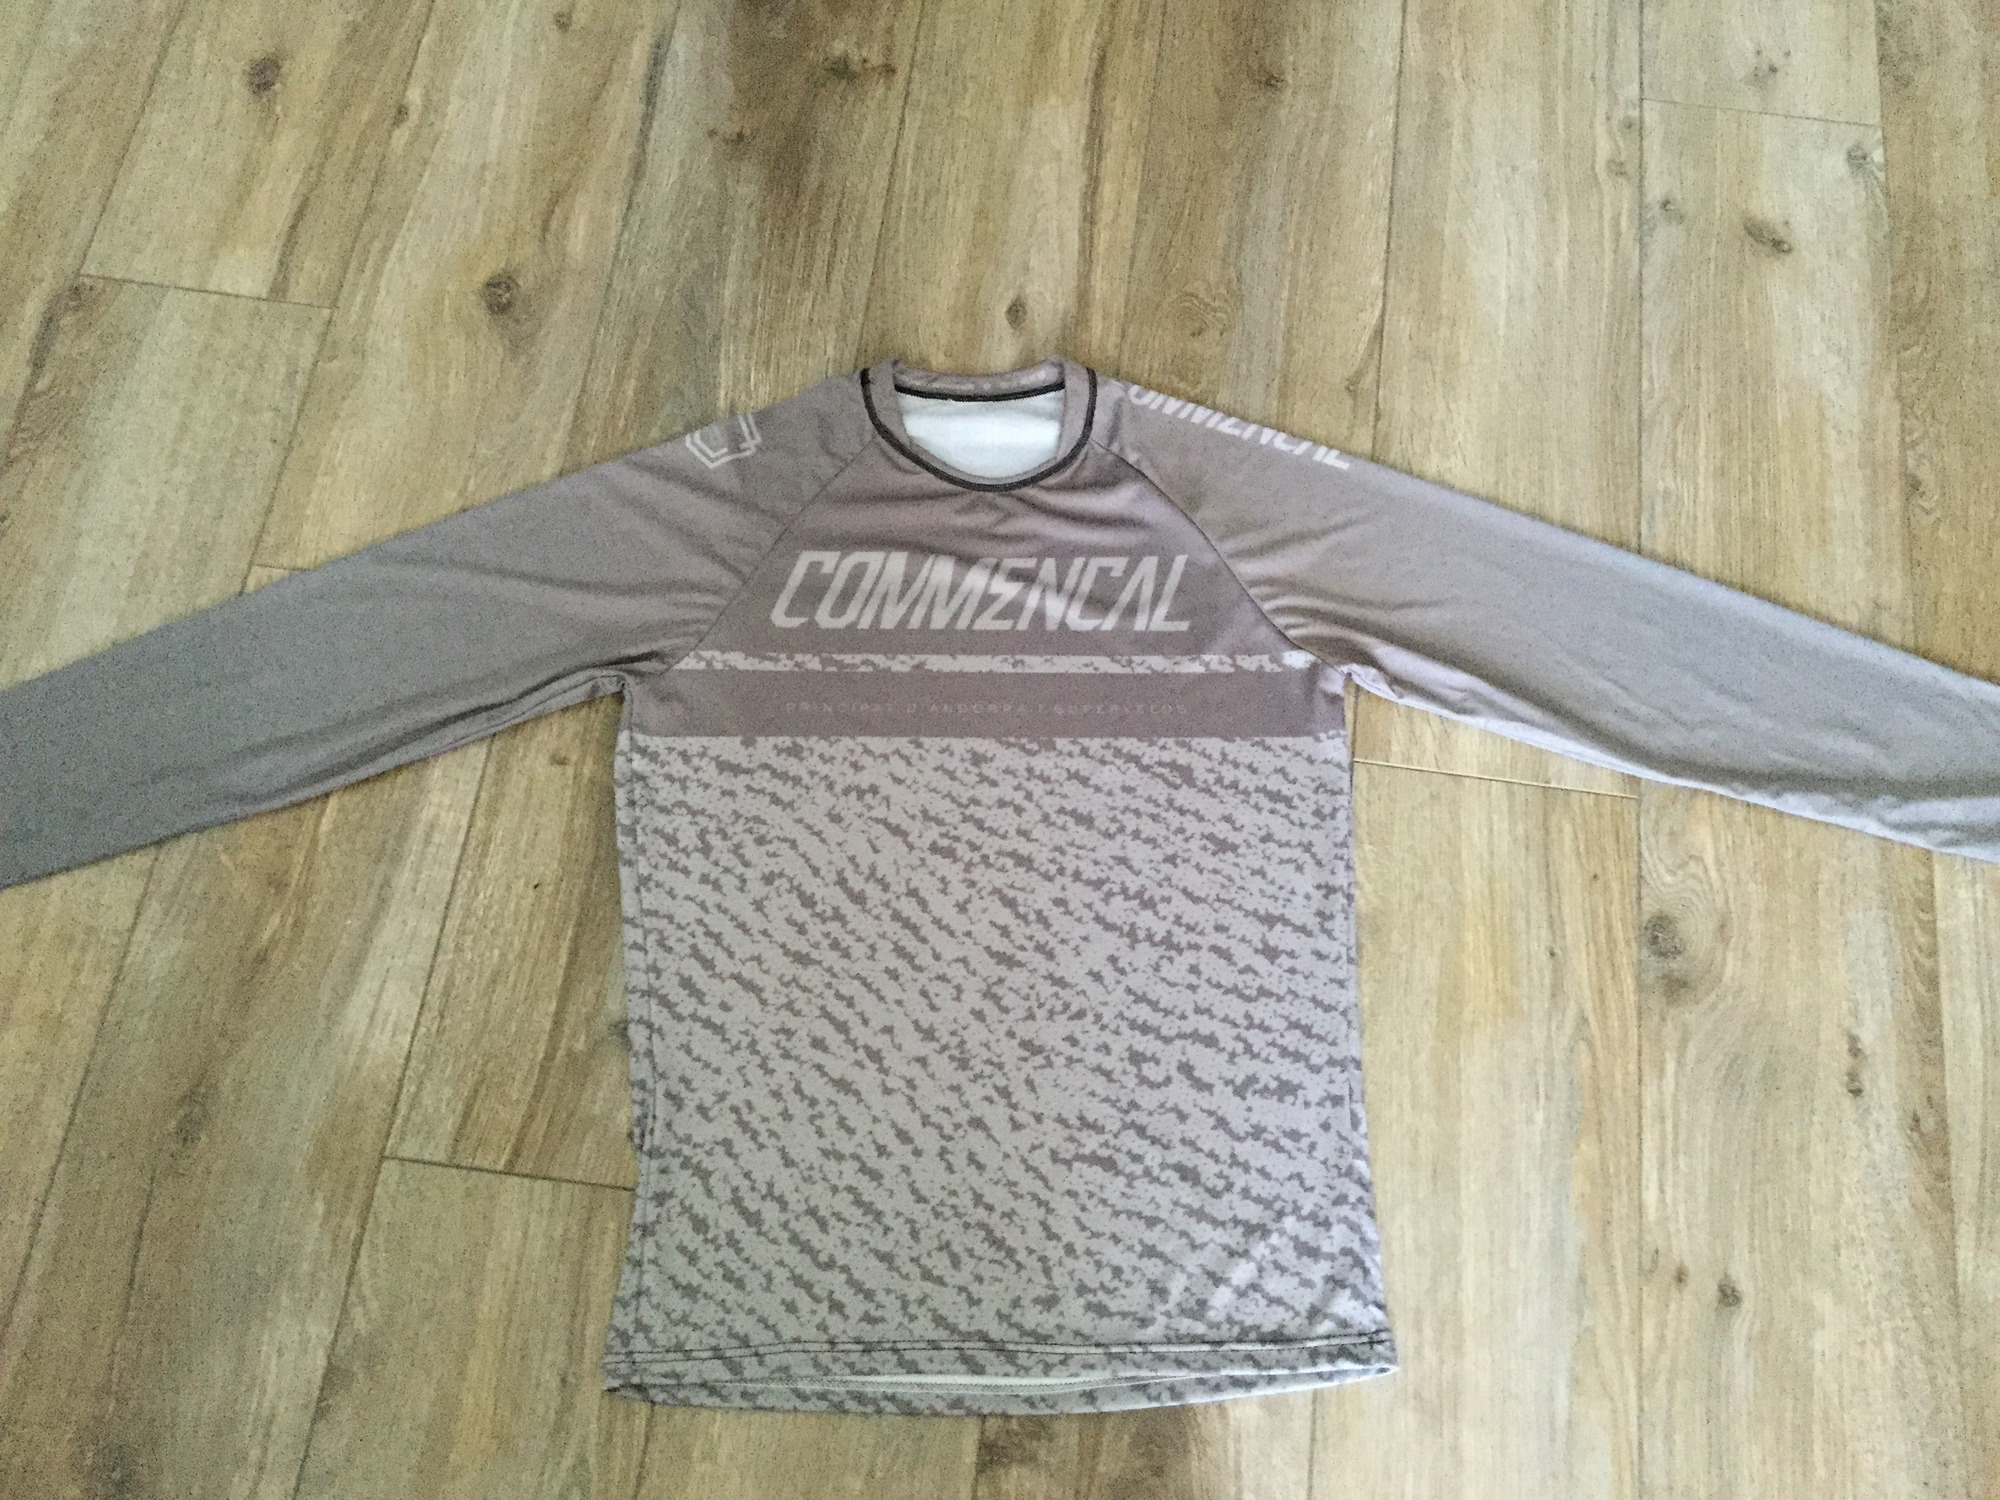 Comm Maillot manches longues commencal grey 2019